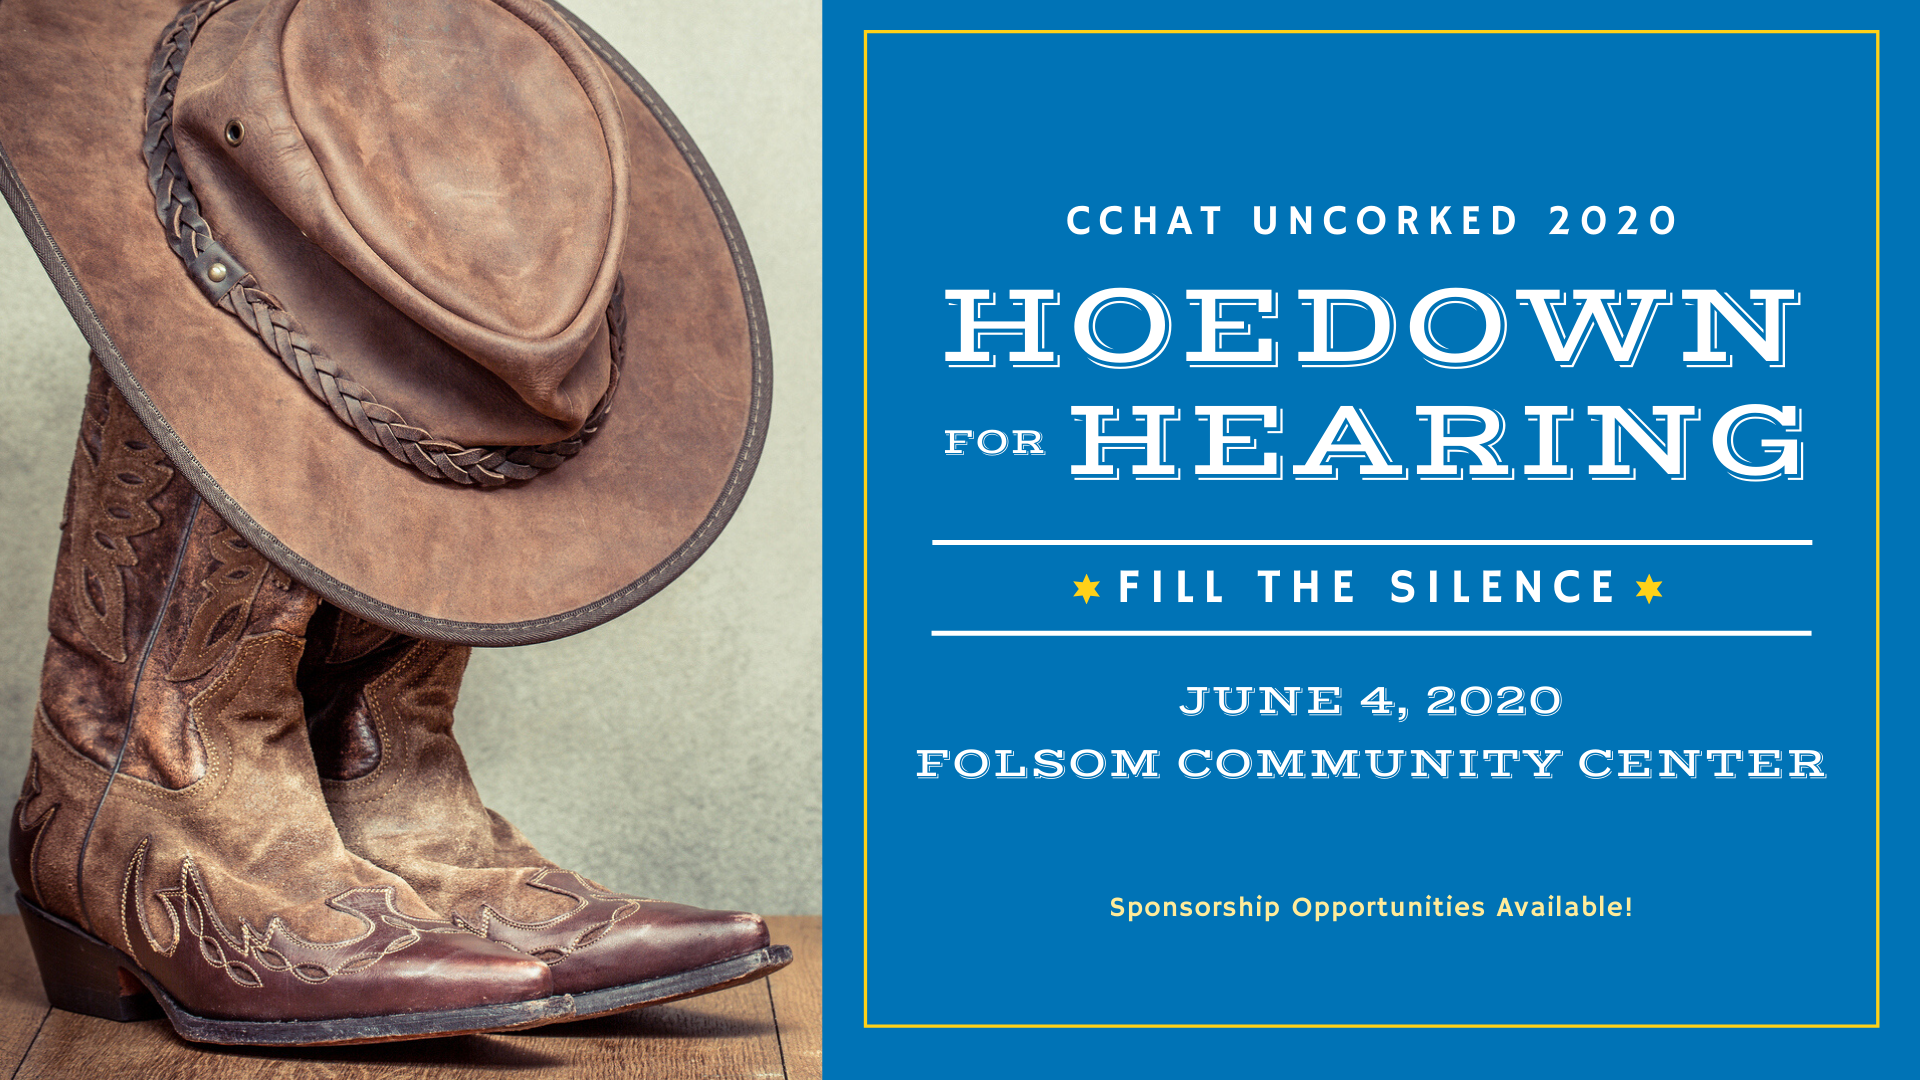 CCHAT Uncorked 2020 - Hoedown for Hearing (Rescheduled)